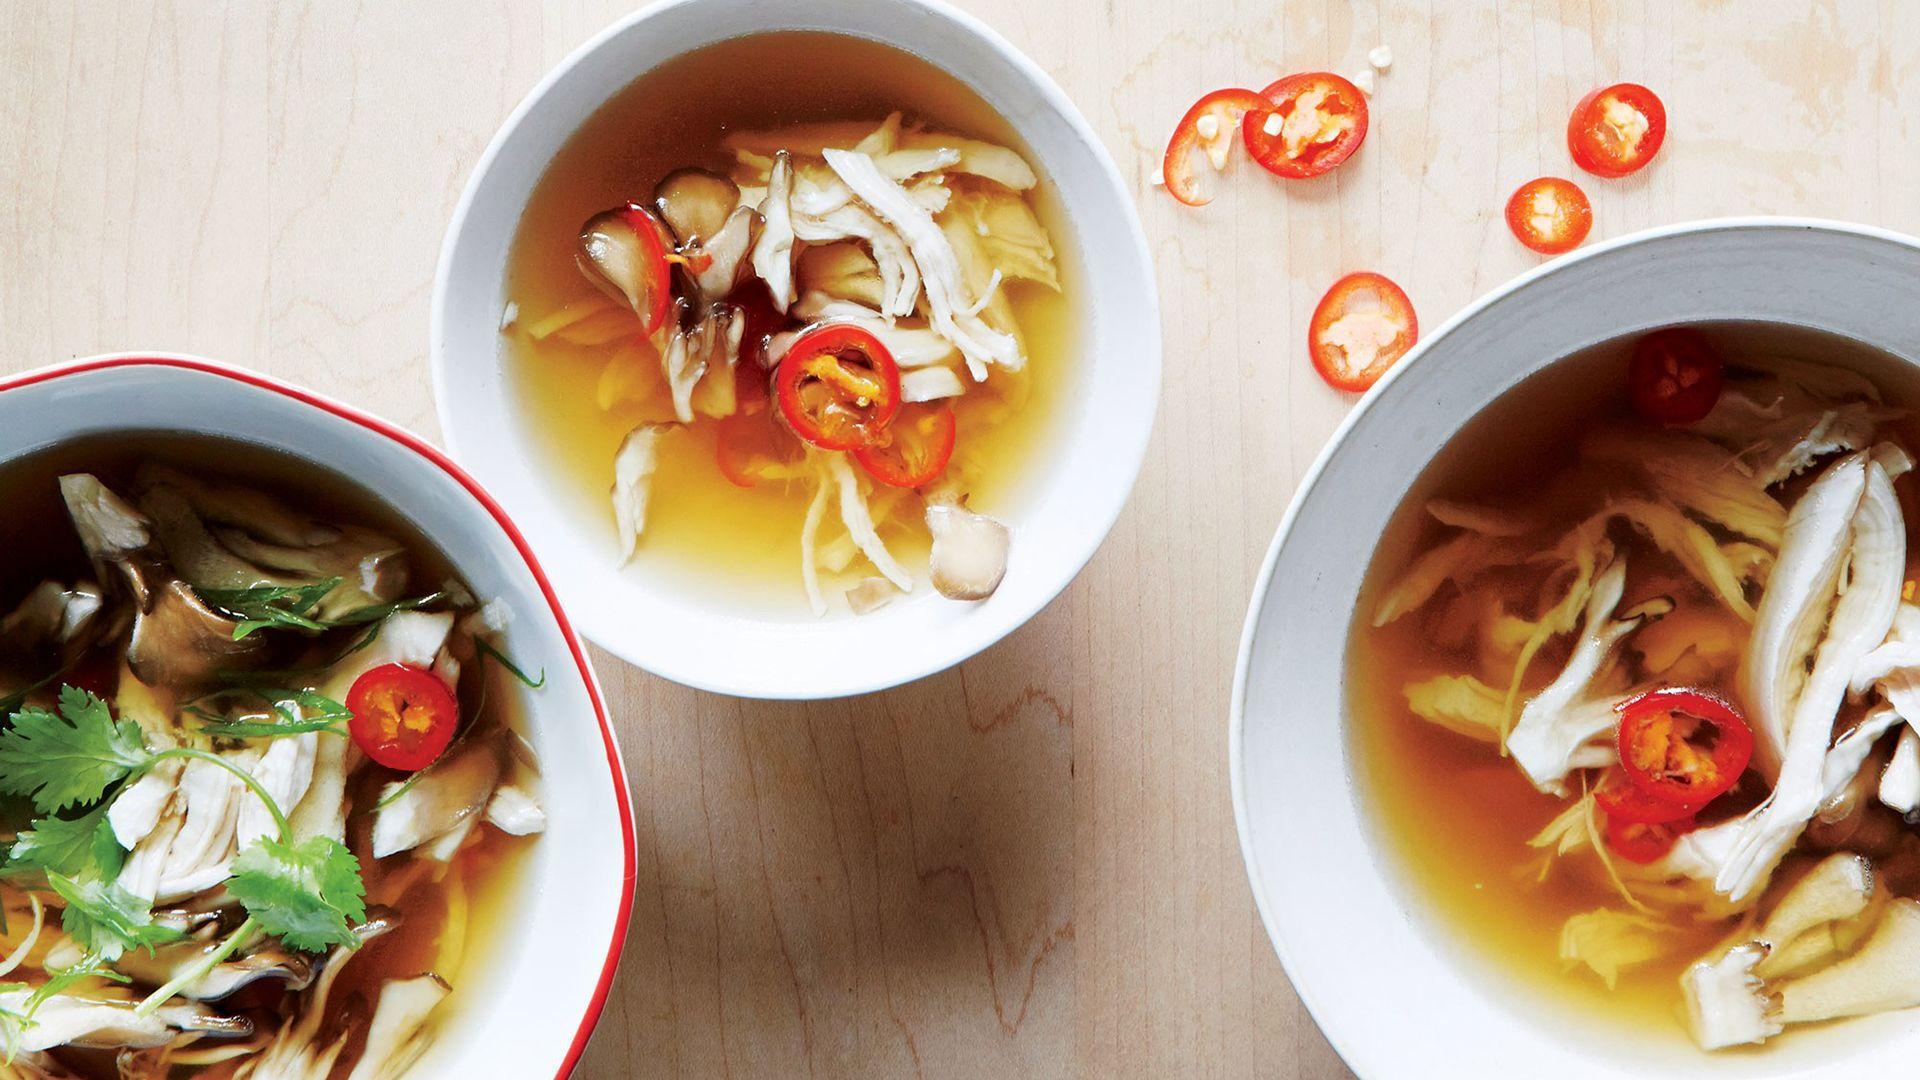 What's For Dinner: Brothy Poached Chicken, The Quickest Meal | HuffPost Life